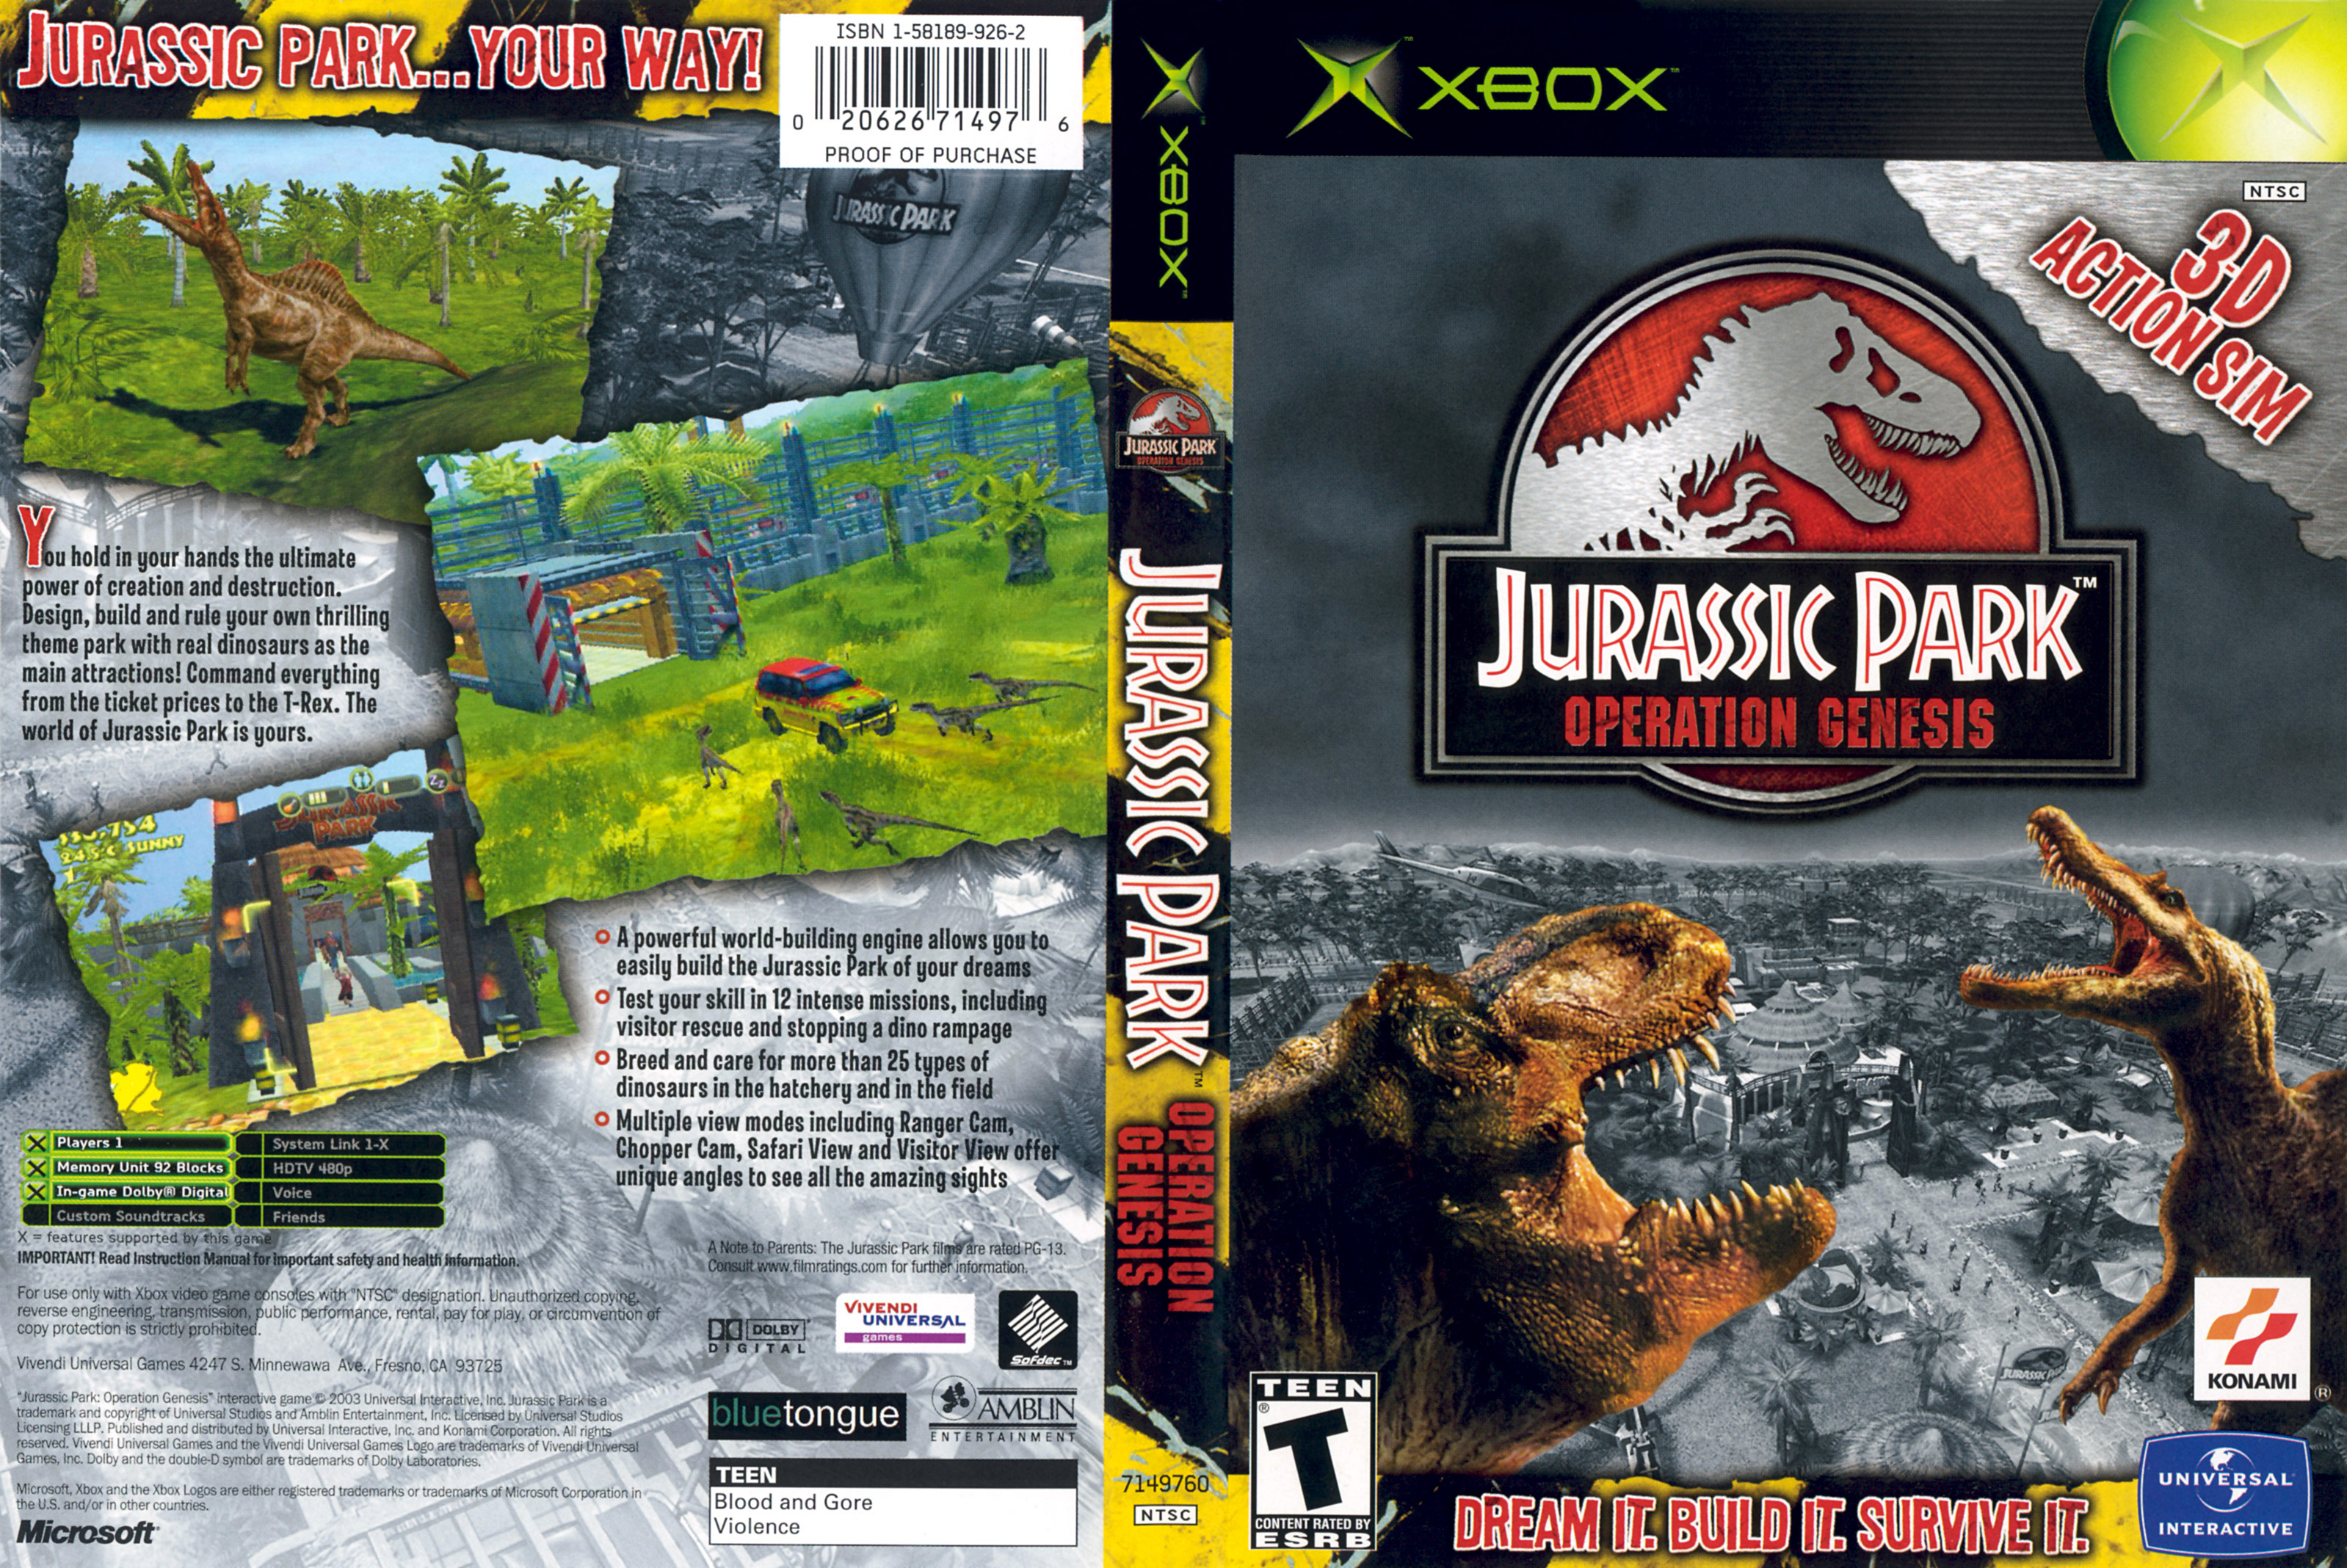 Pretty Much Everything You Would Want In A Jurassic Park Video Game